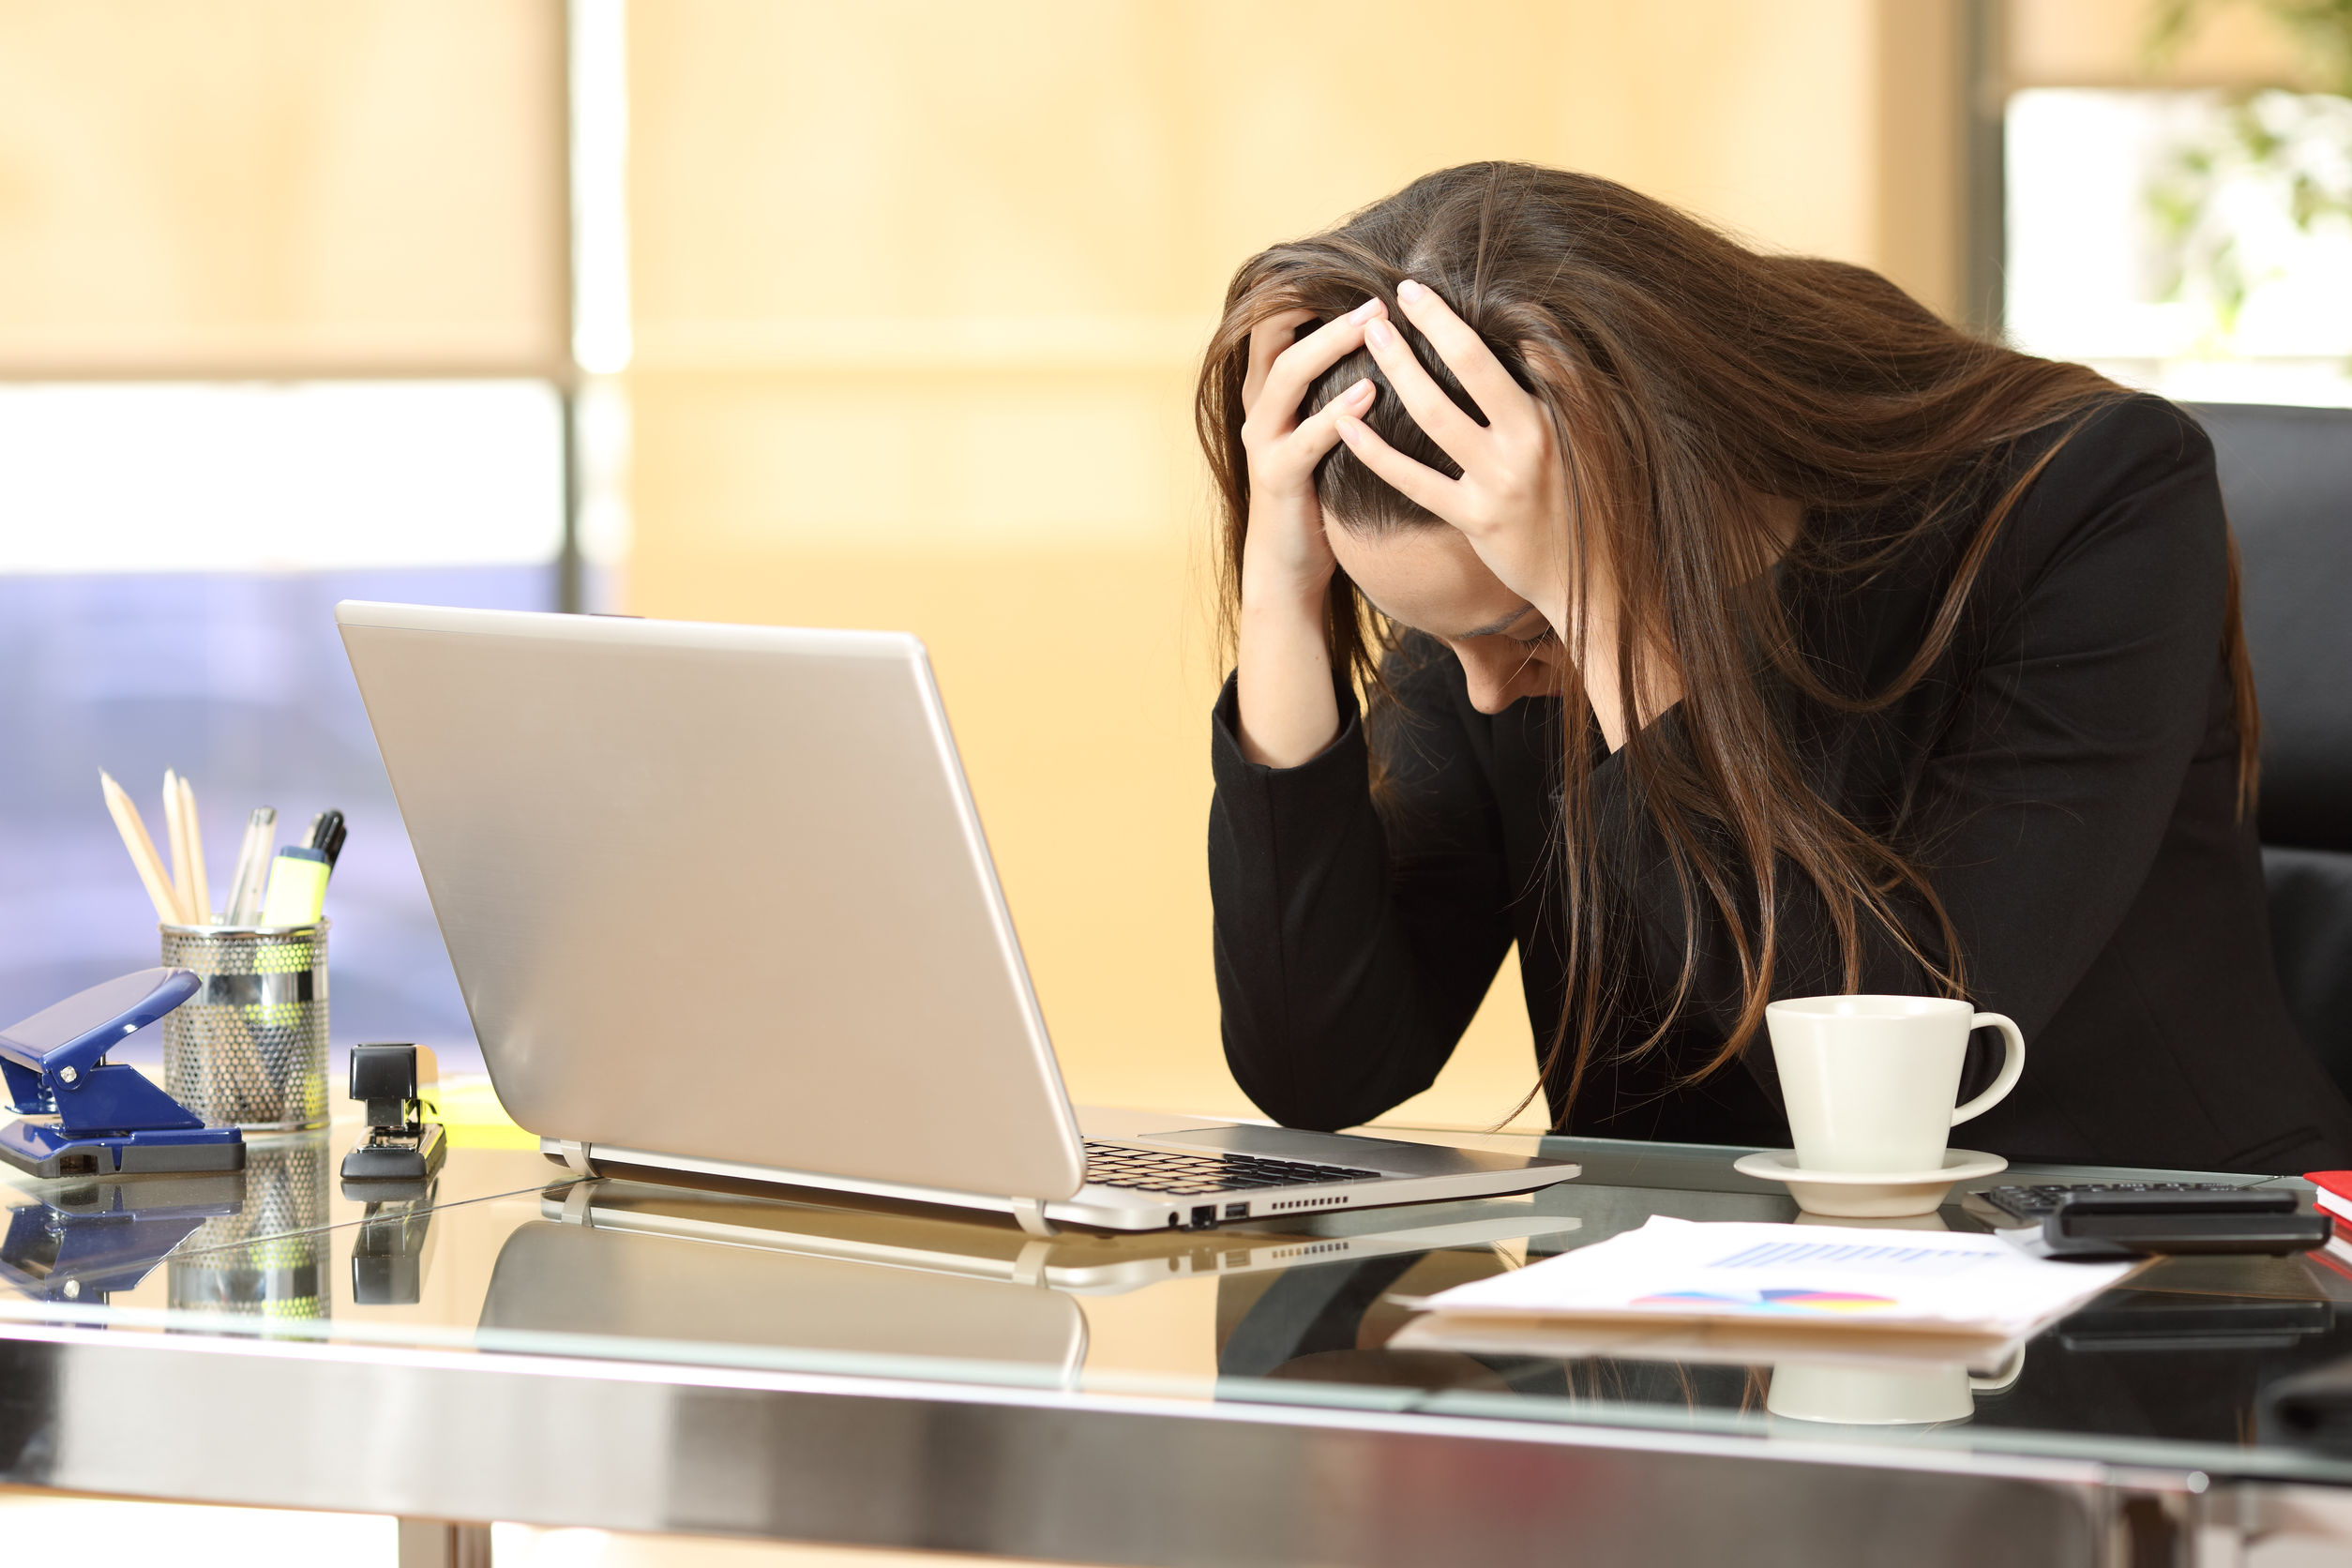 Article image for WHO recognises burnout as a medical condition, psychologist says it's 'a very real problem'